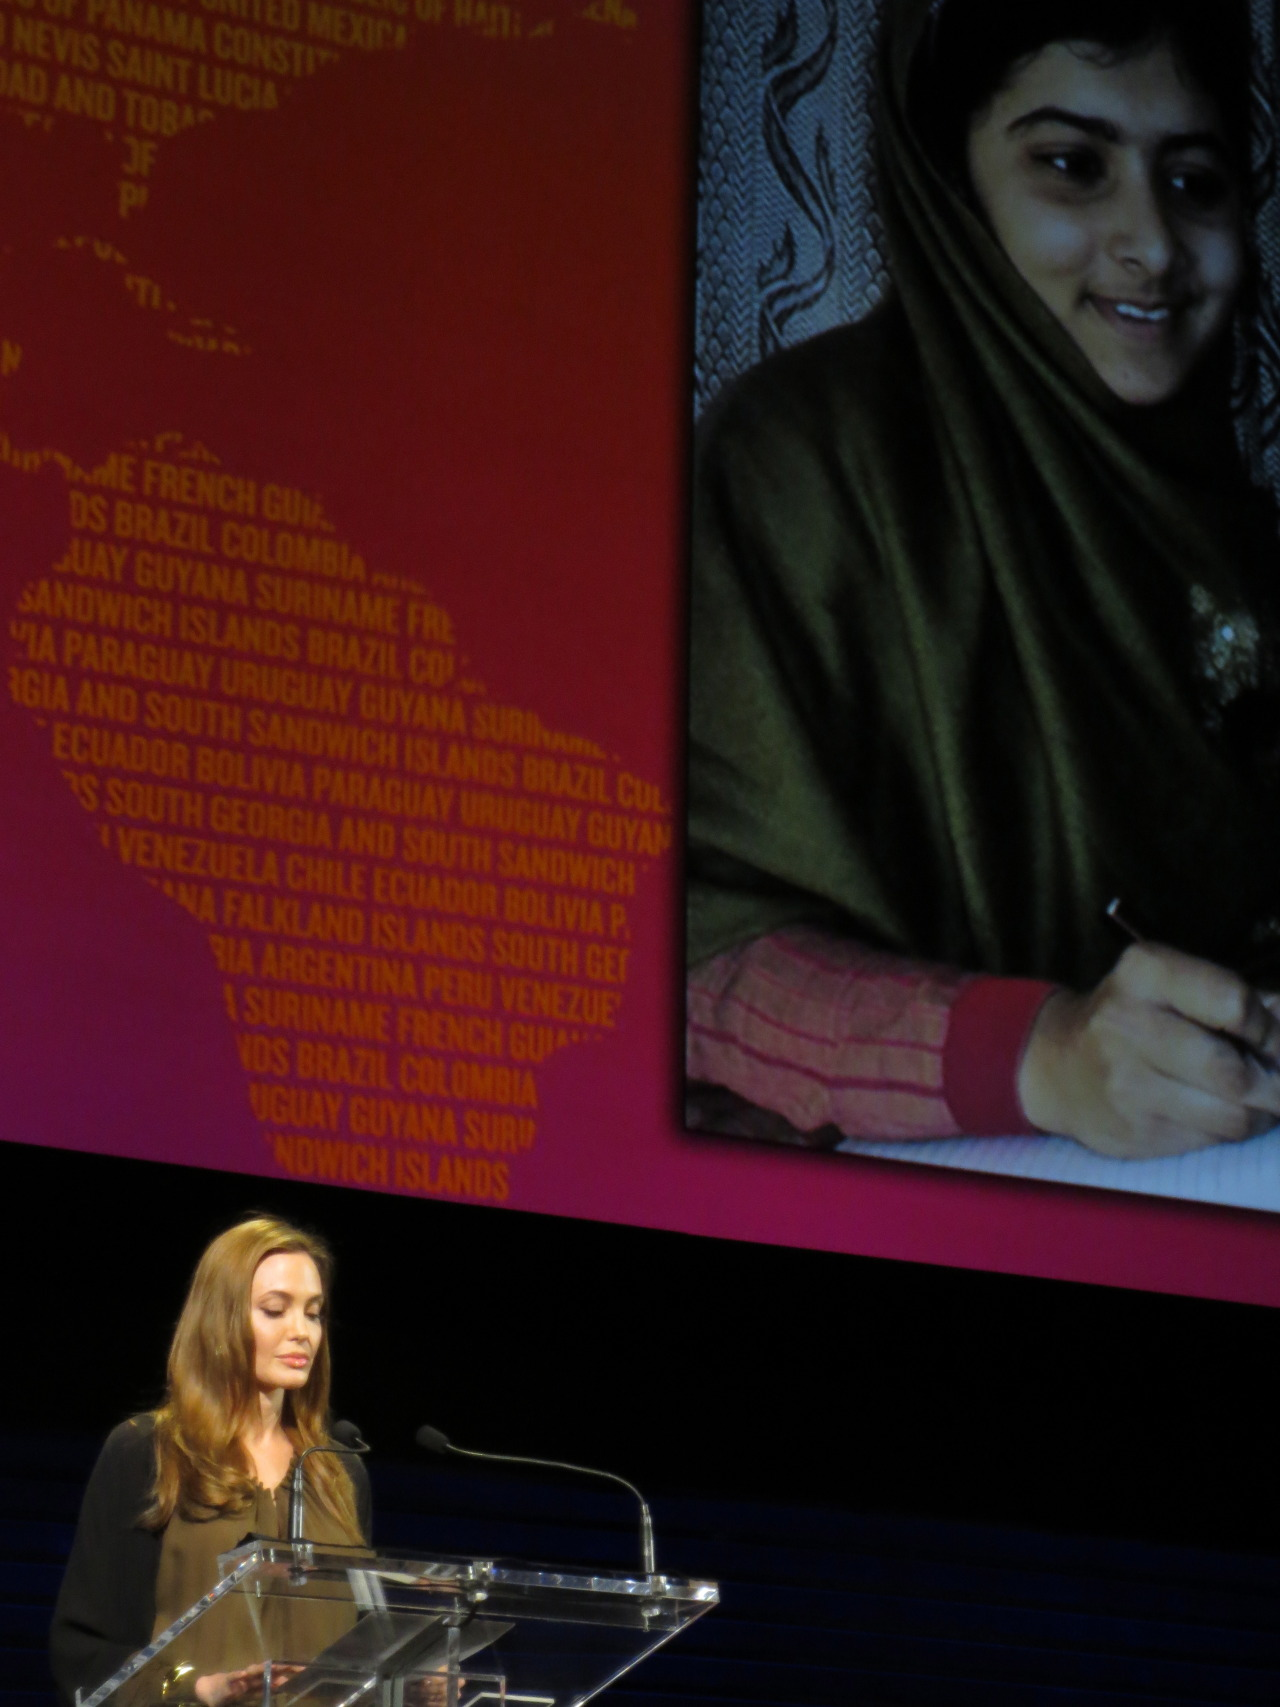 Angelina Jolie speaking about Pakistan's wounded teenage activist Malala Yousafzai at the extraordinary Women in the World Summit last night. Today - Hillary Clinton and many more great speakers. #wiw13